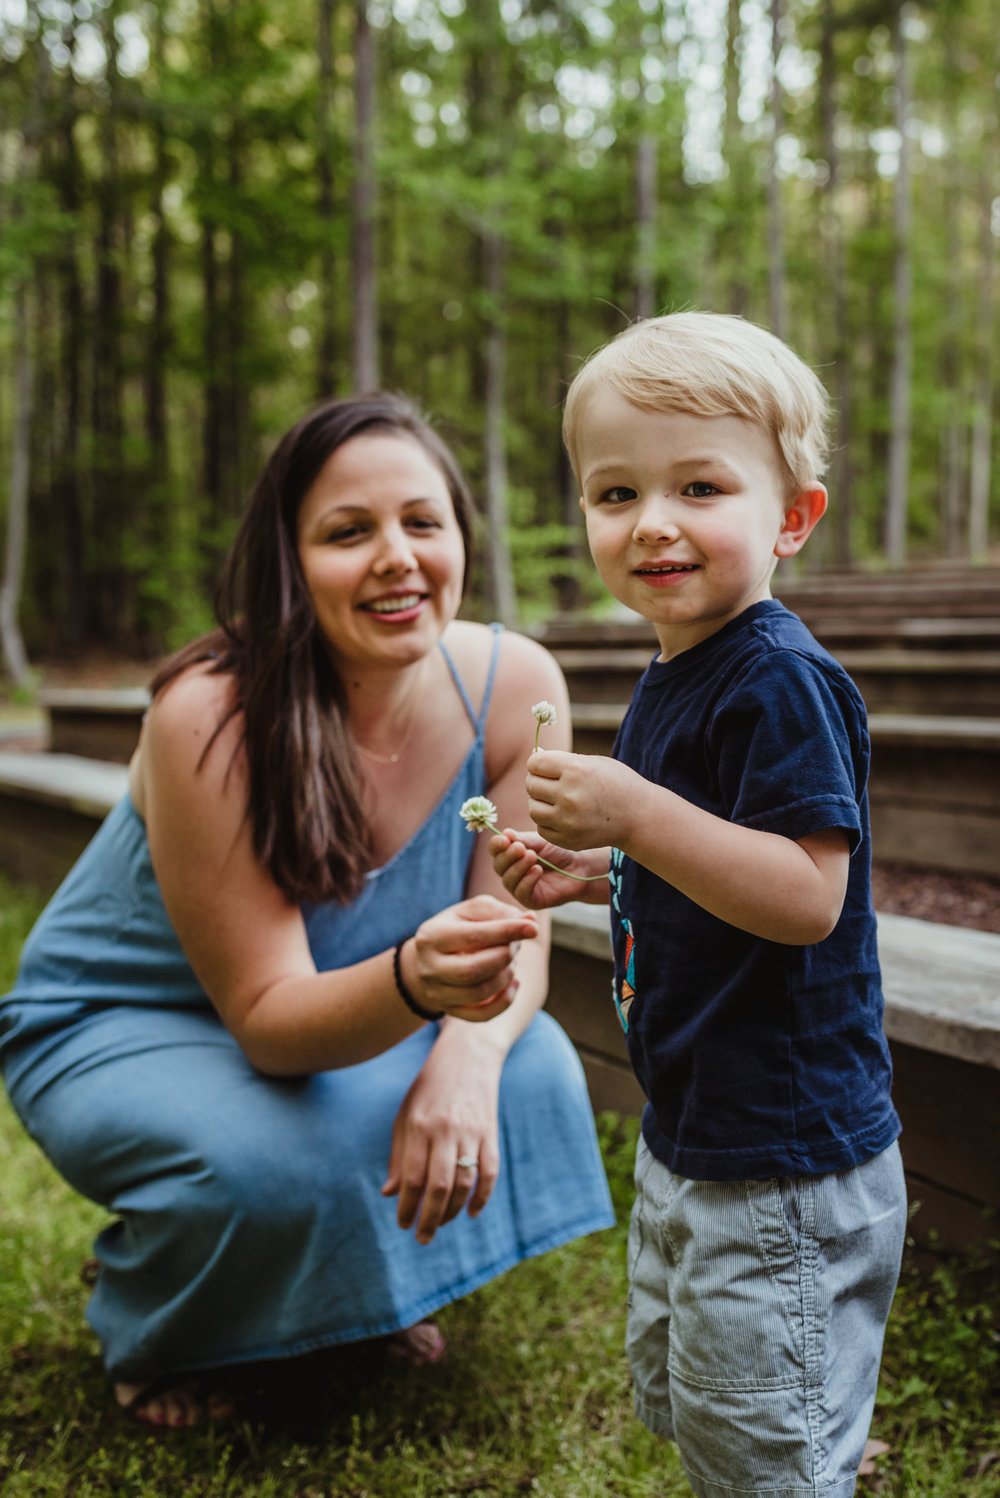 The little boy gives flowers to his mom during their family photo session with Rose Trail Images in Rolesville, North Carolina.